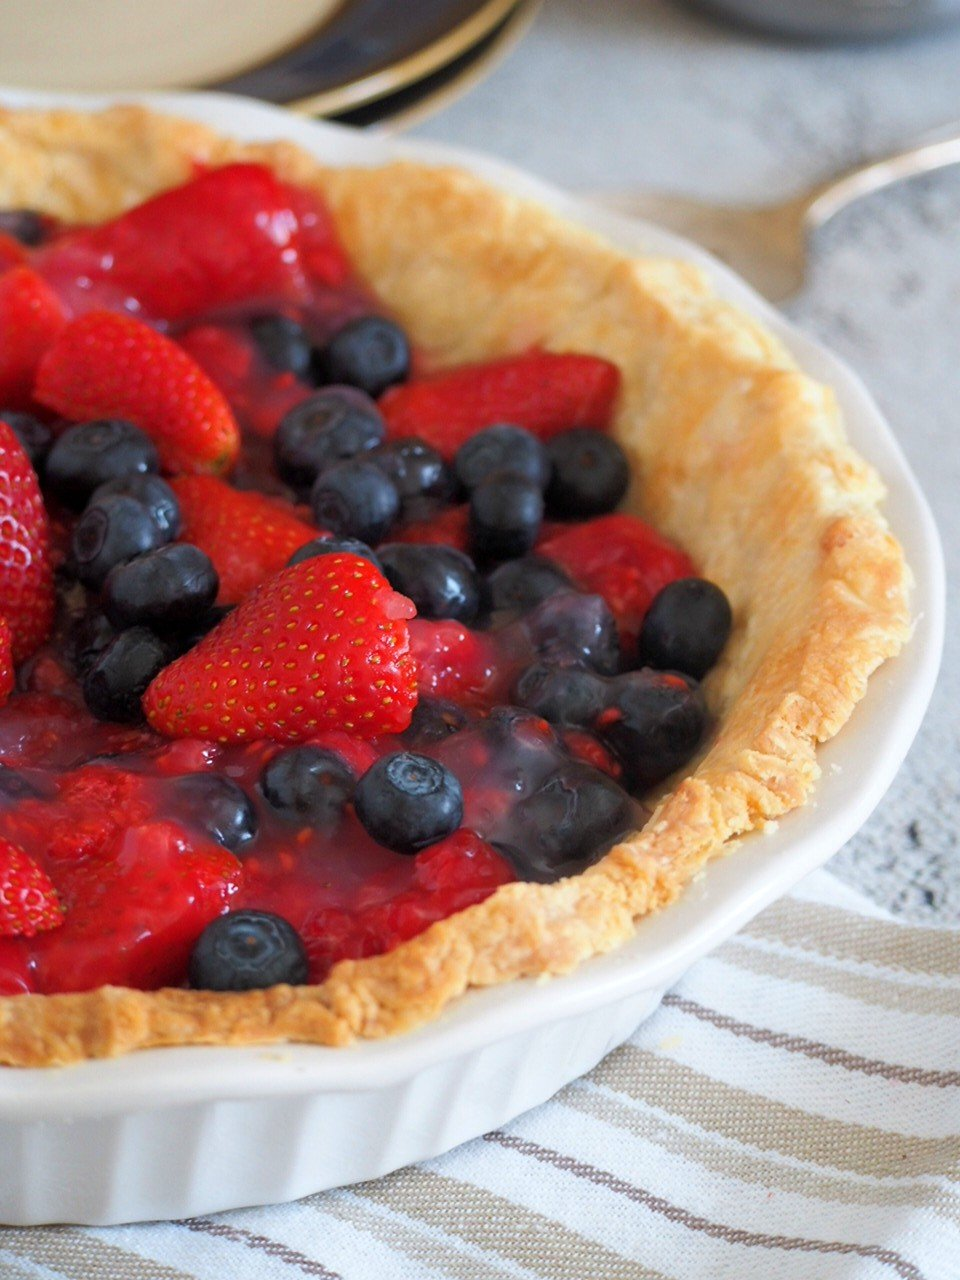 Close up view of glazed triple berry pie.